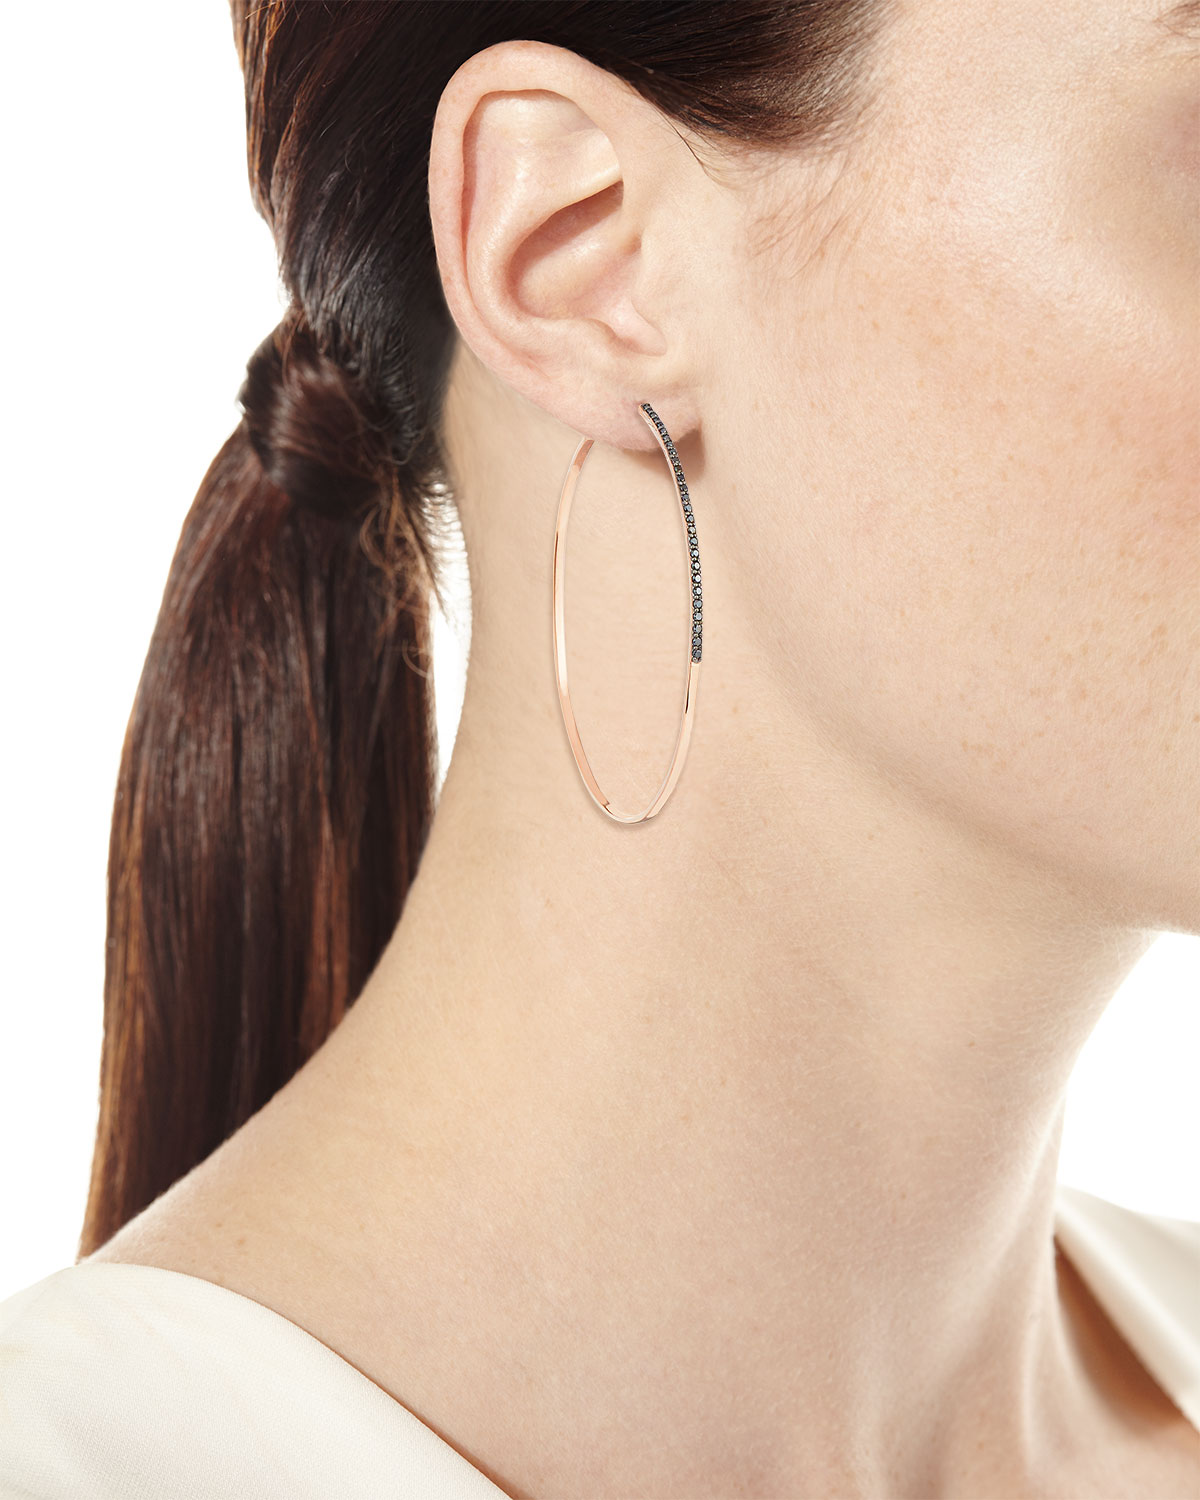 Lana Jewelry Reckless Vol. 2 Large Femme Hoop Earrings with Black Diamonds in 14K Rose Gold BAeUL